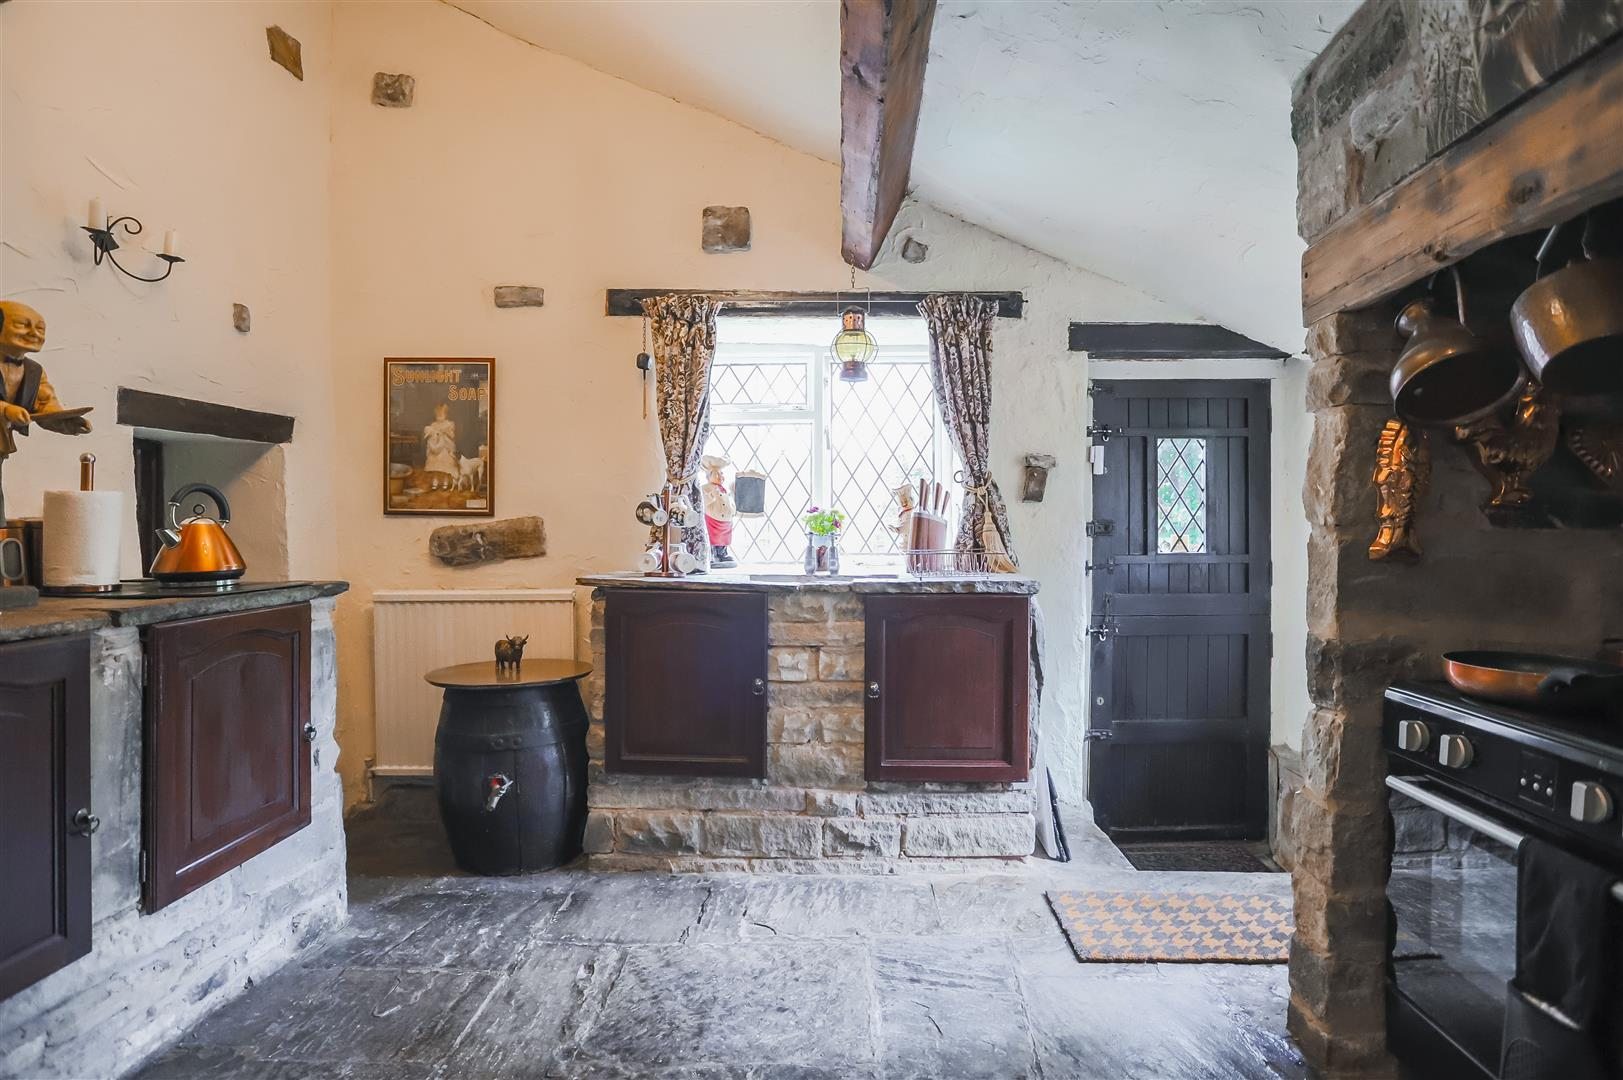 3 Bedroom House For Sale - Image 4